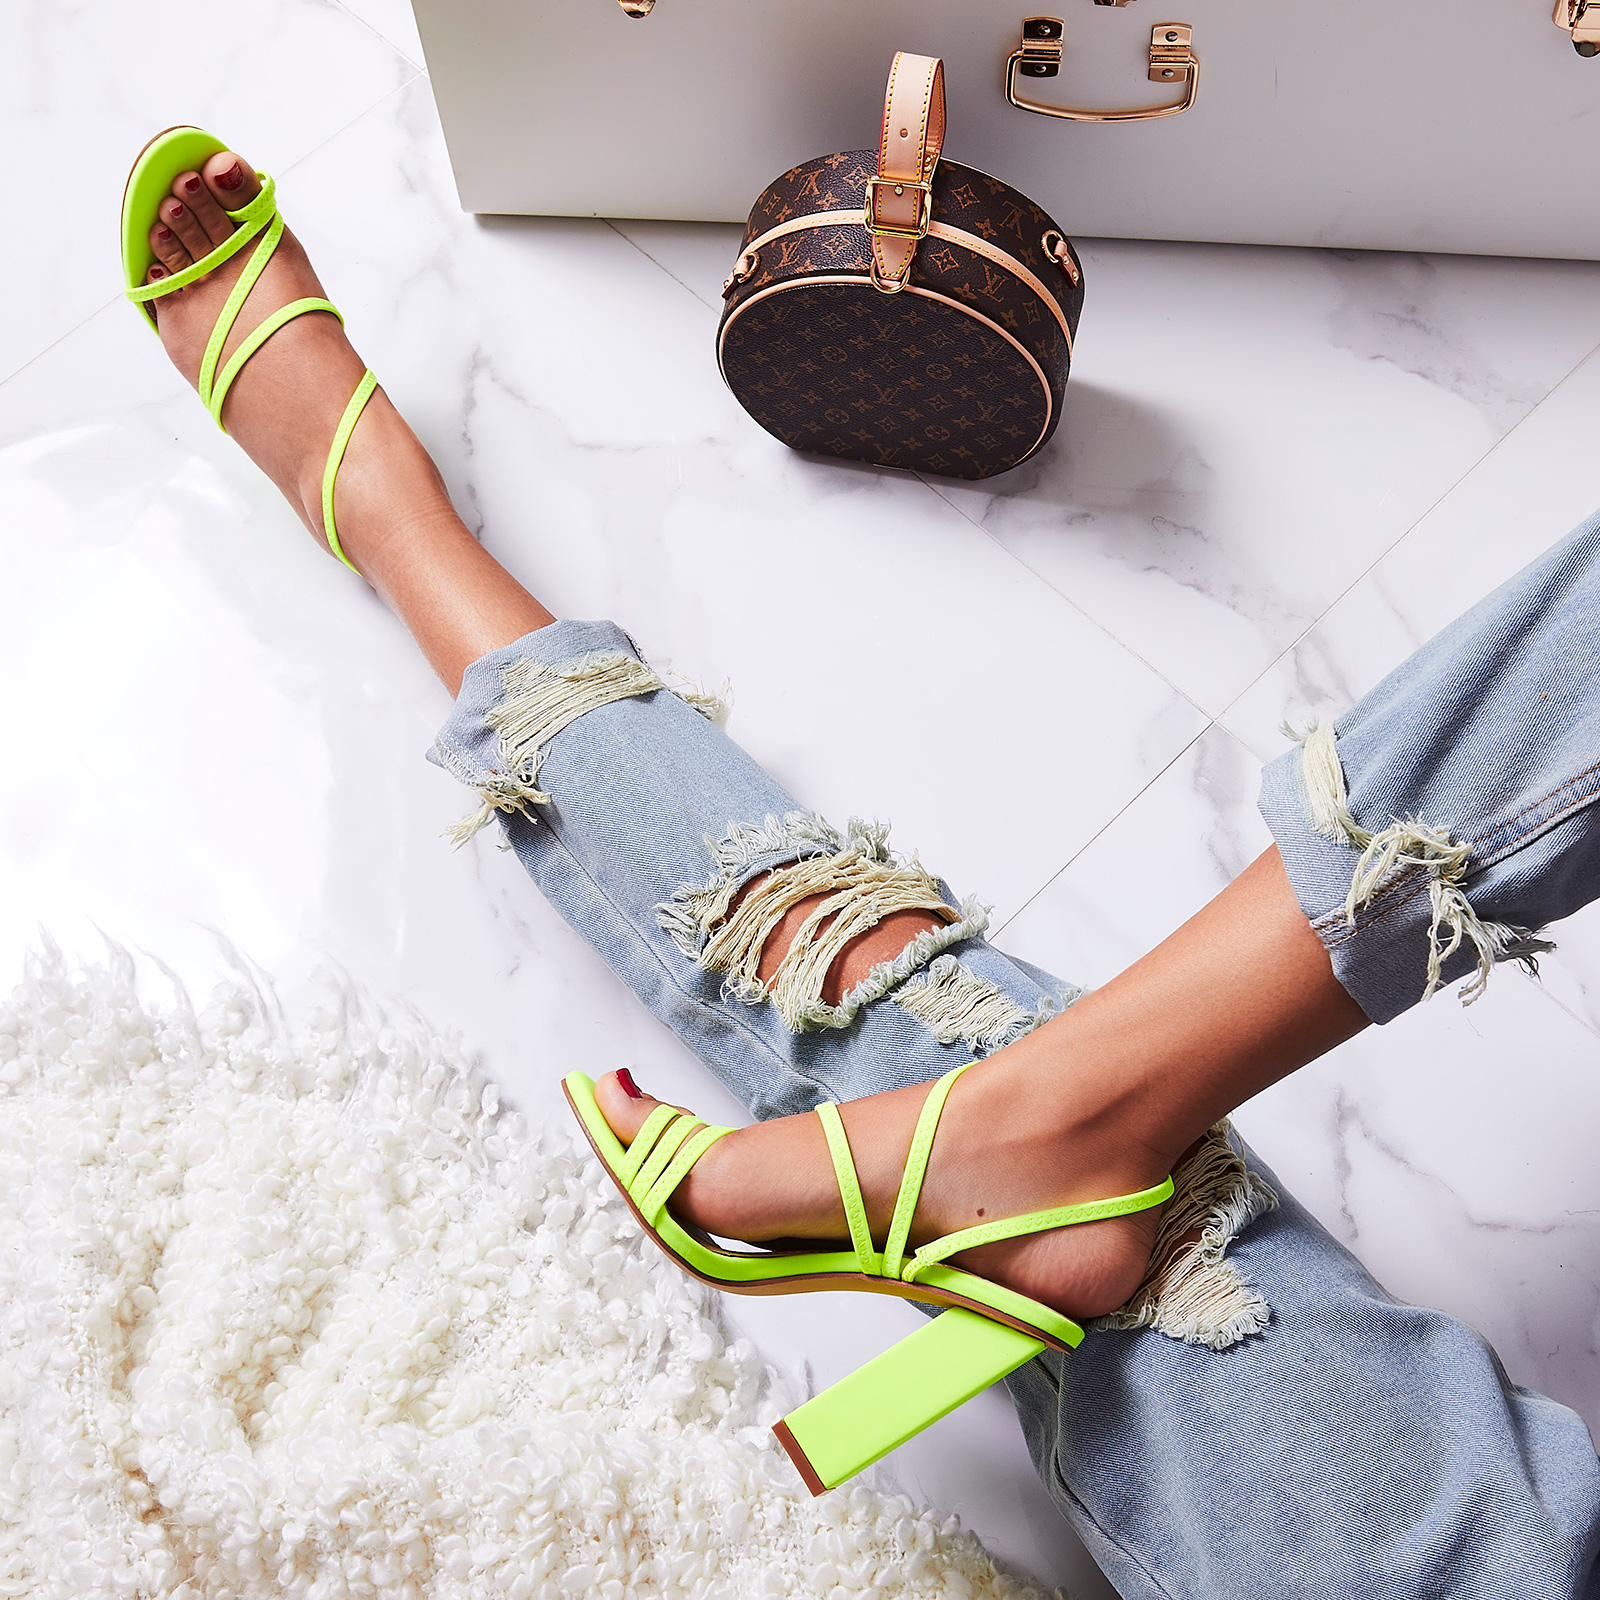 Bello-Ay Strappy Block Heel In Neon Green Lycra